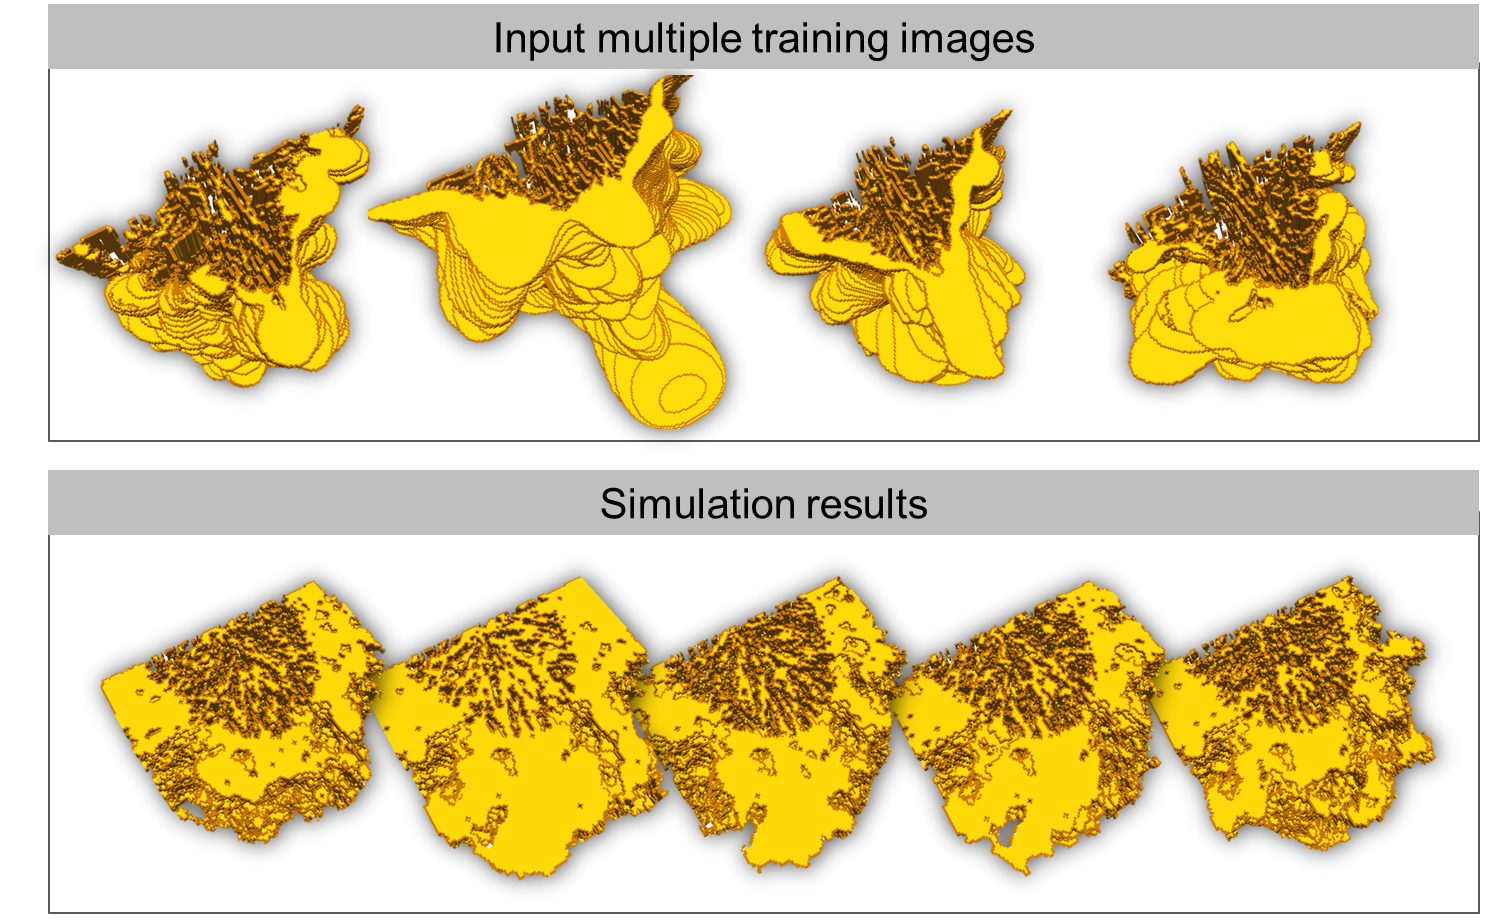 Multipoint MPS simulations from process model training images